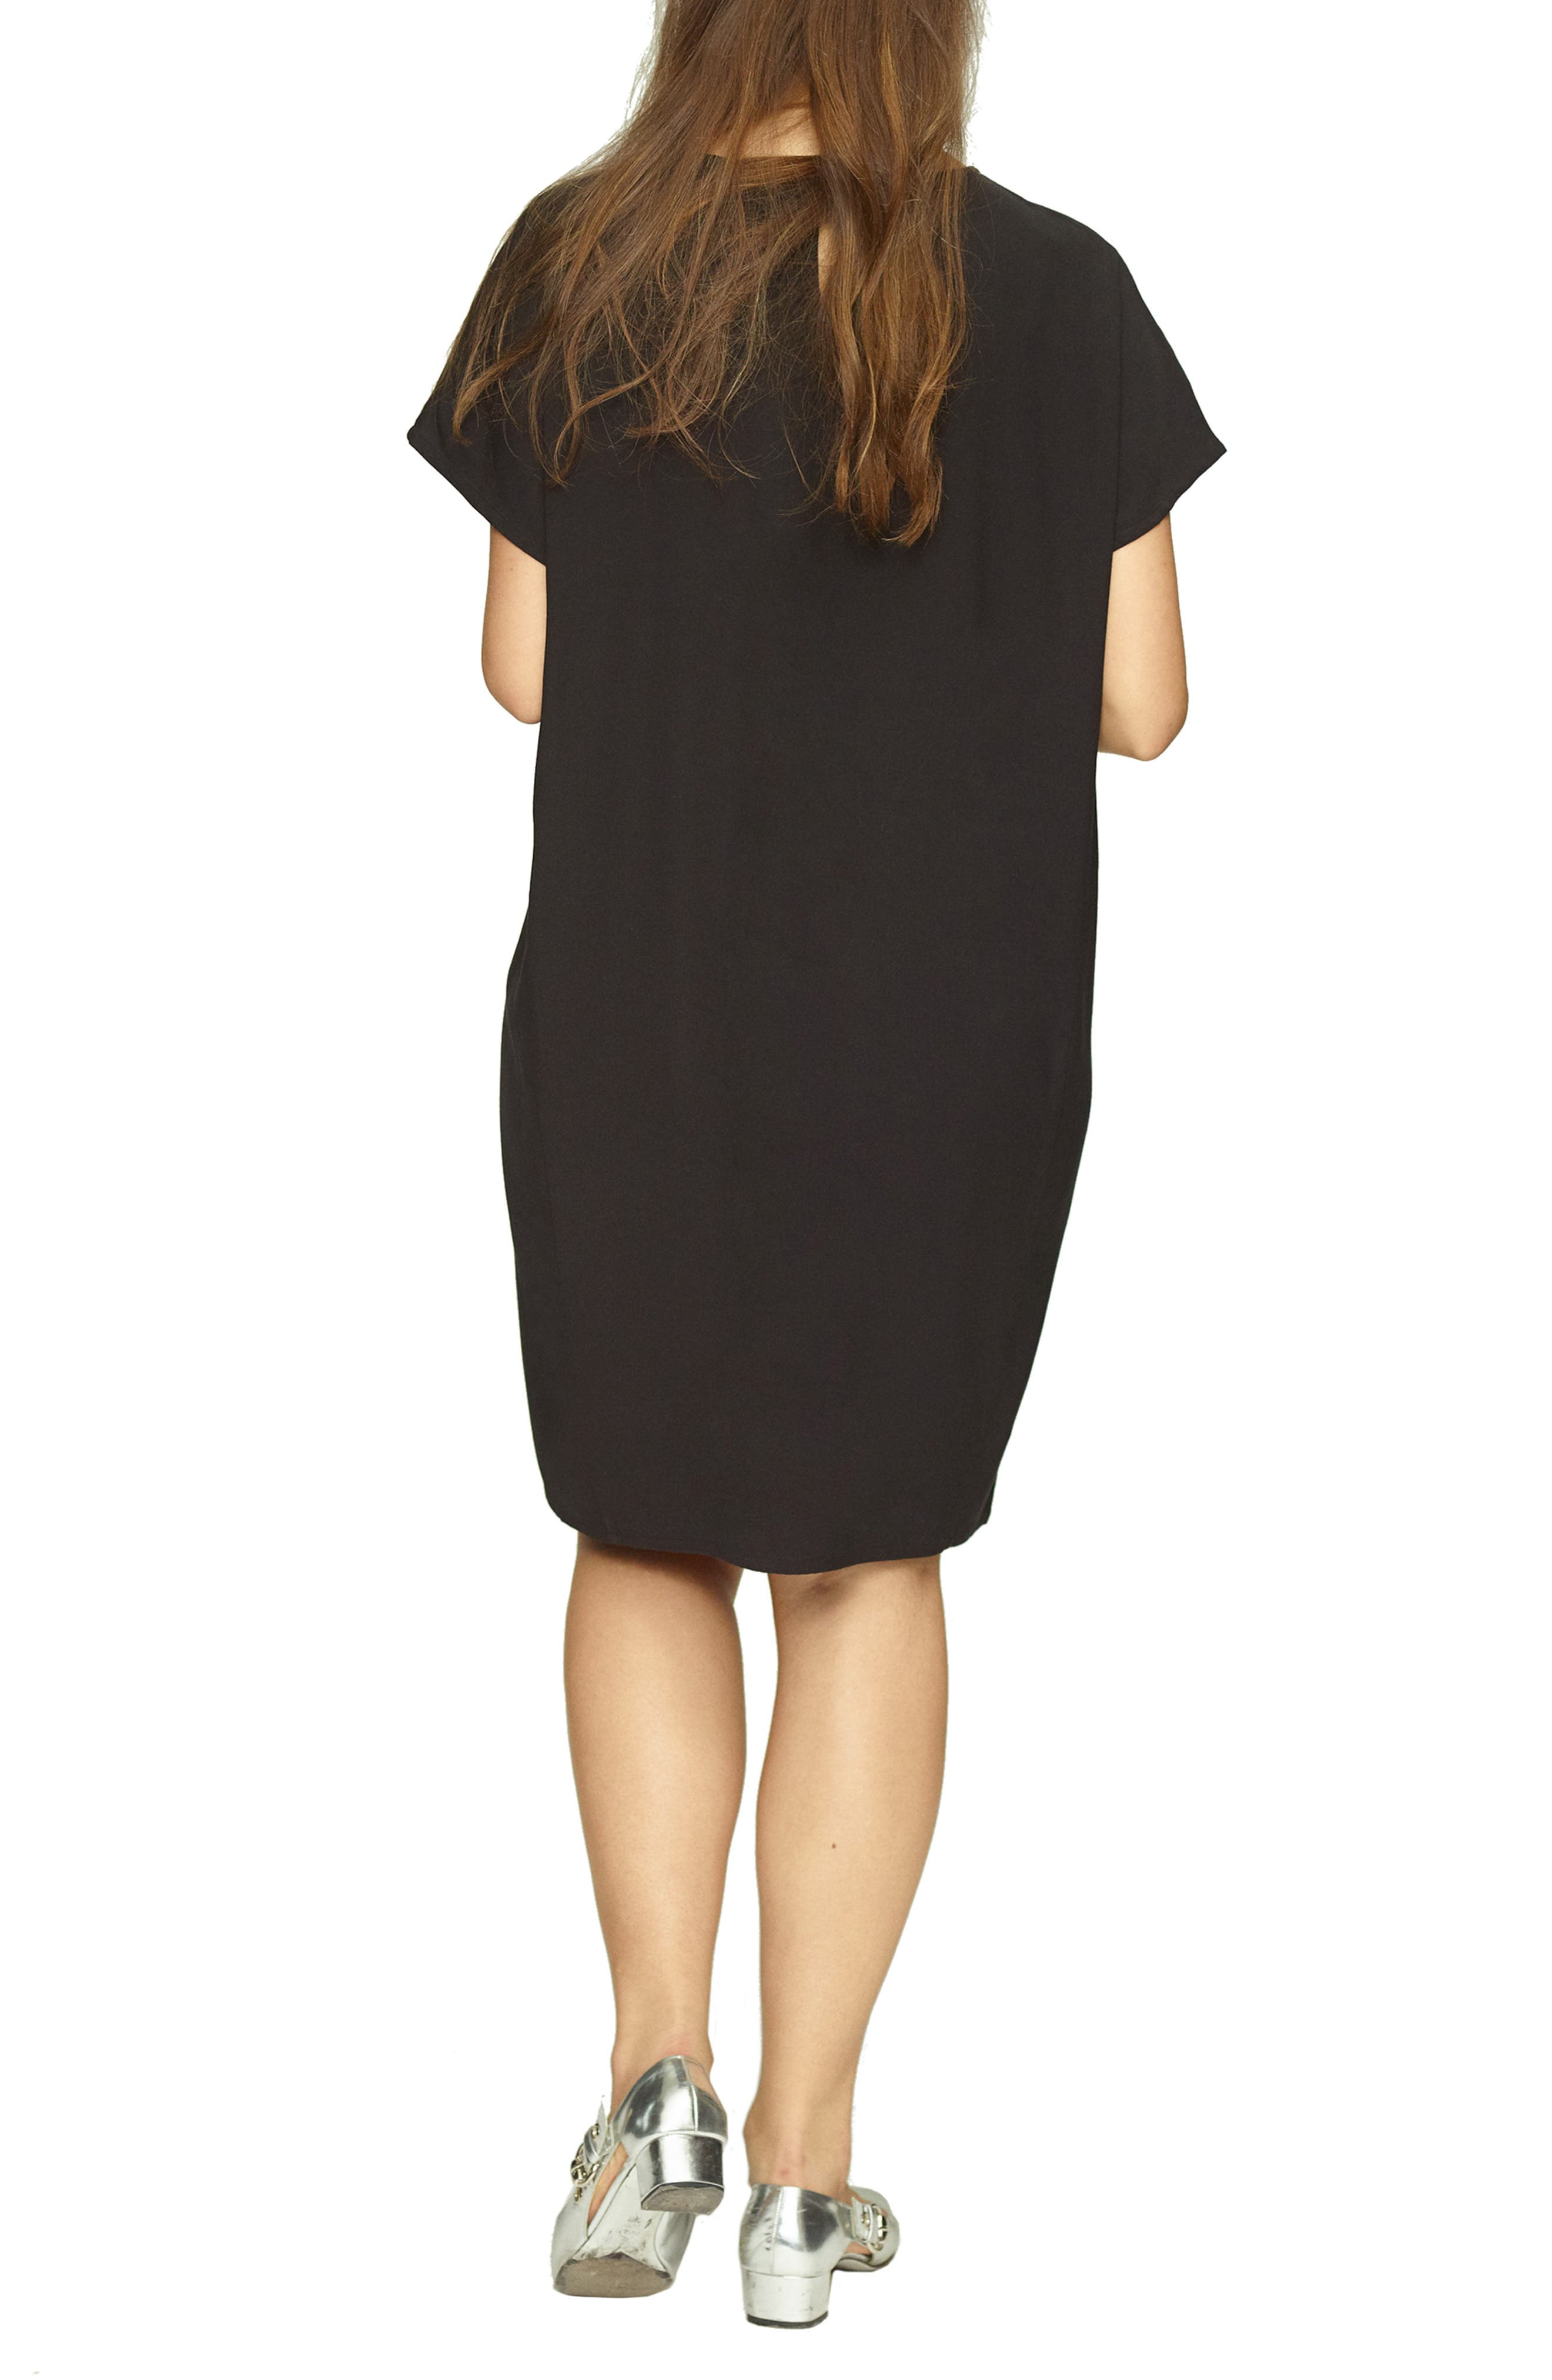 UNIVERSAL STANDARD, Luxe Twill Sheath Dress, Alternate thumbnail 2, color, 001